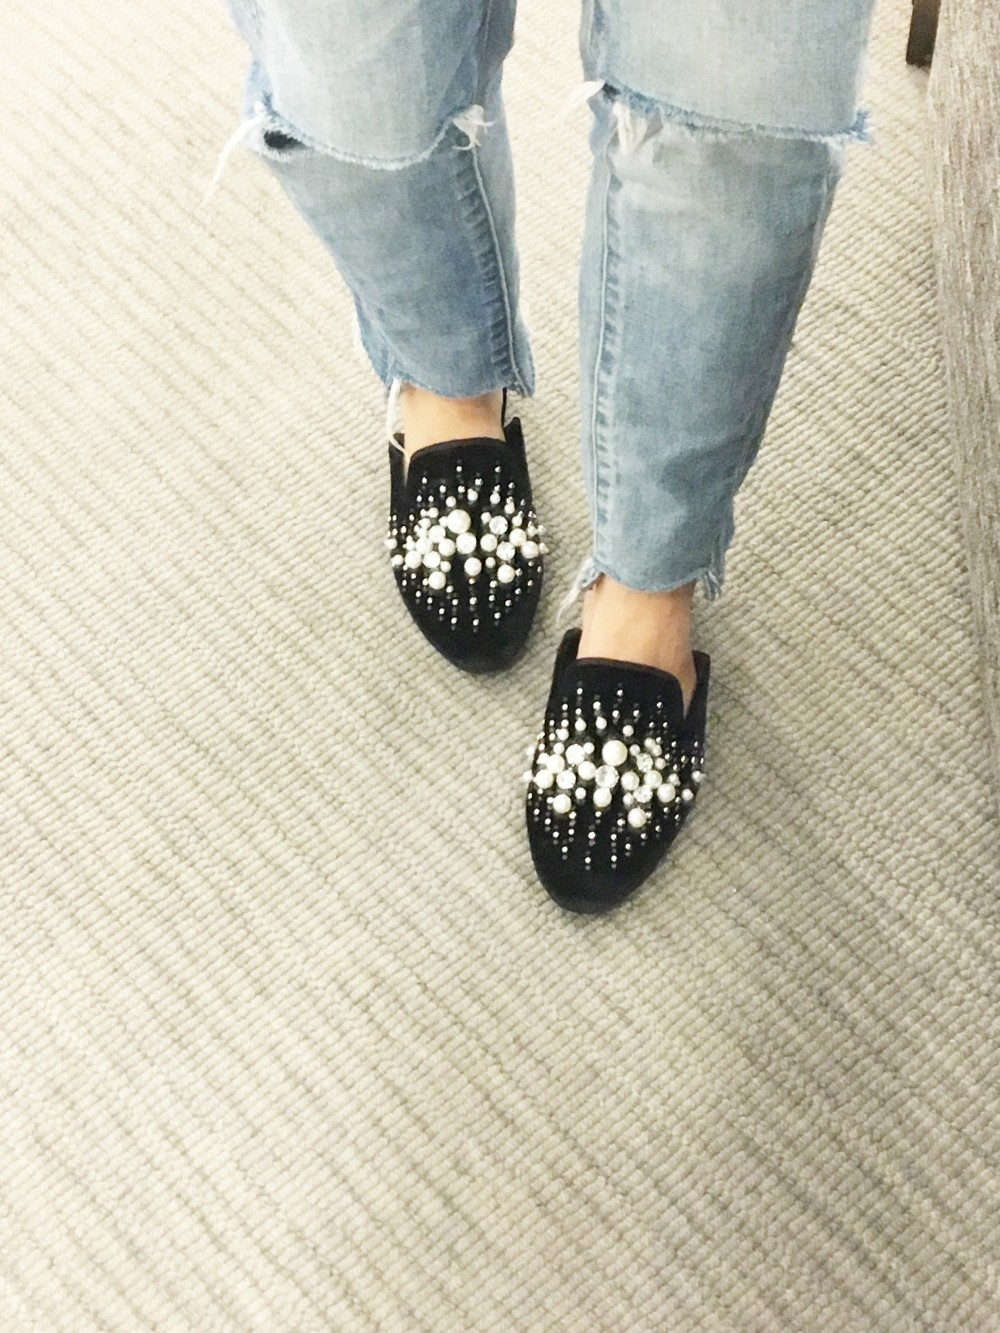 Dressing Room Diaries- Nordstrom Anniversary Sale-Embellished flats-Blogger Picks for the NSale-Nordstrom Sale-Fall Style-Fall Fashion 2017-Have Need Want